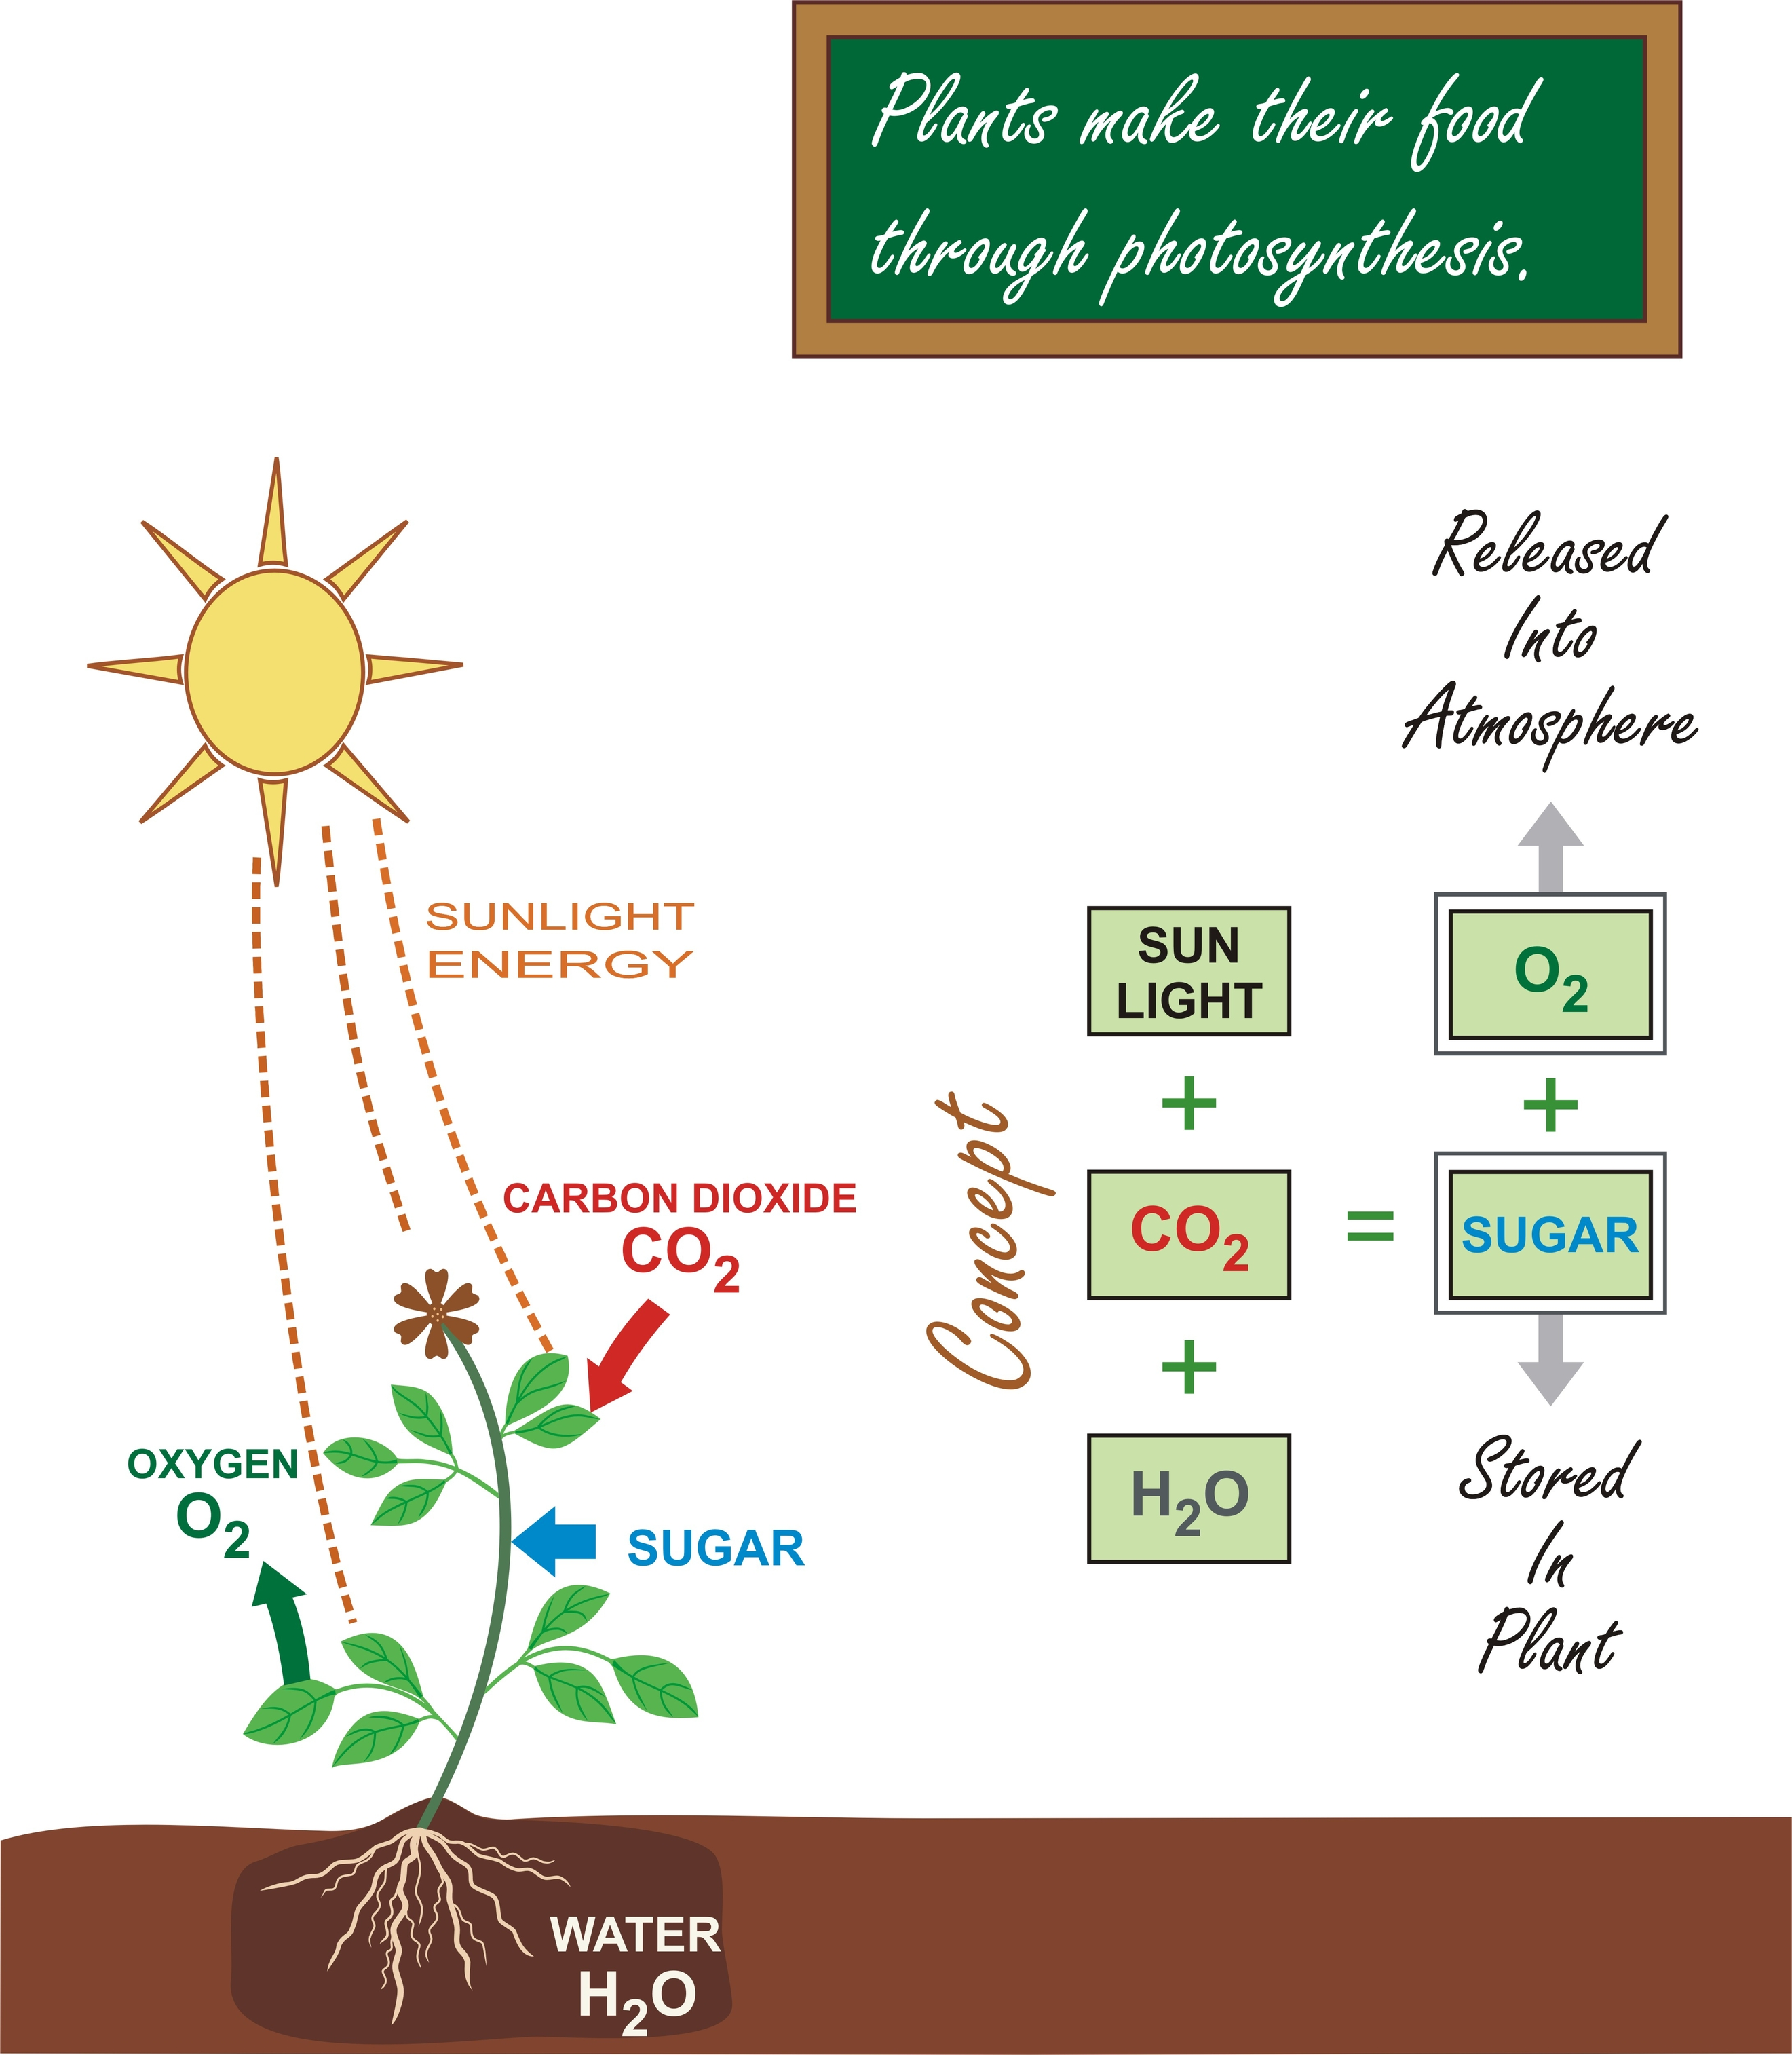 draw a diagram of photosynthesis 400m track kidspressmagazine